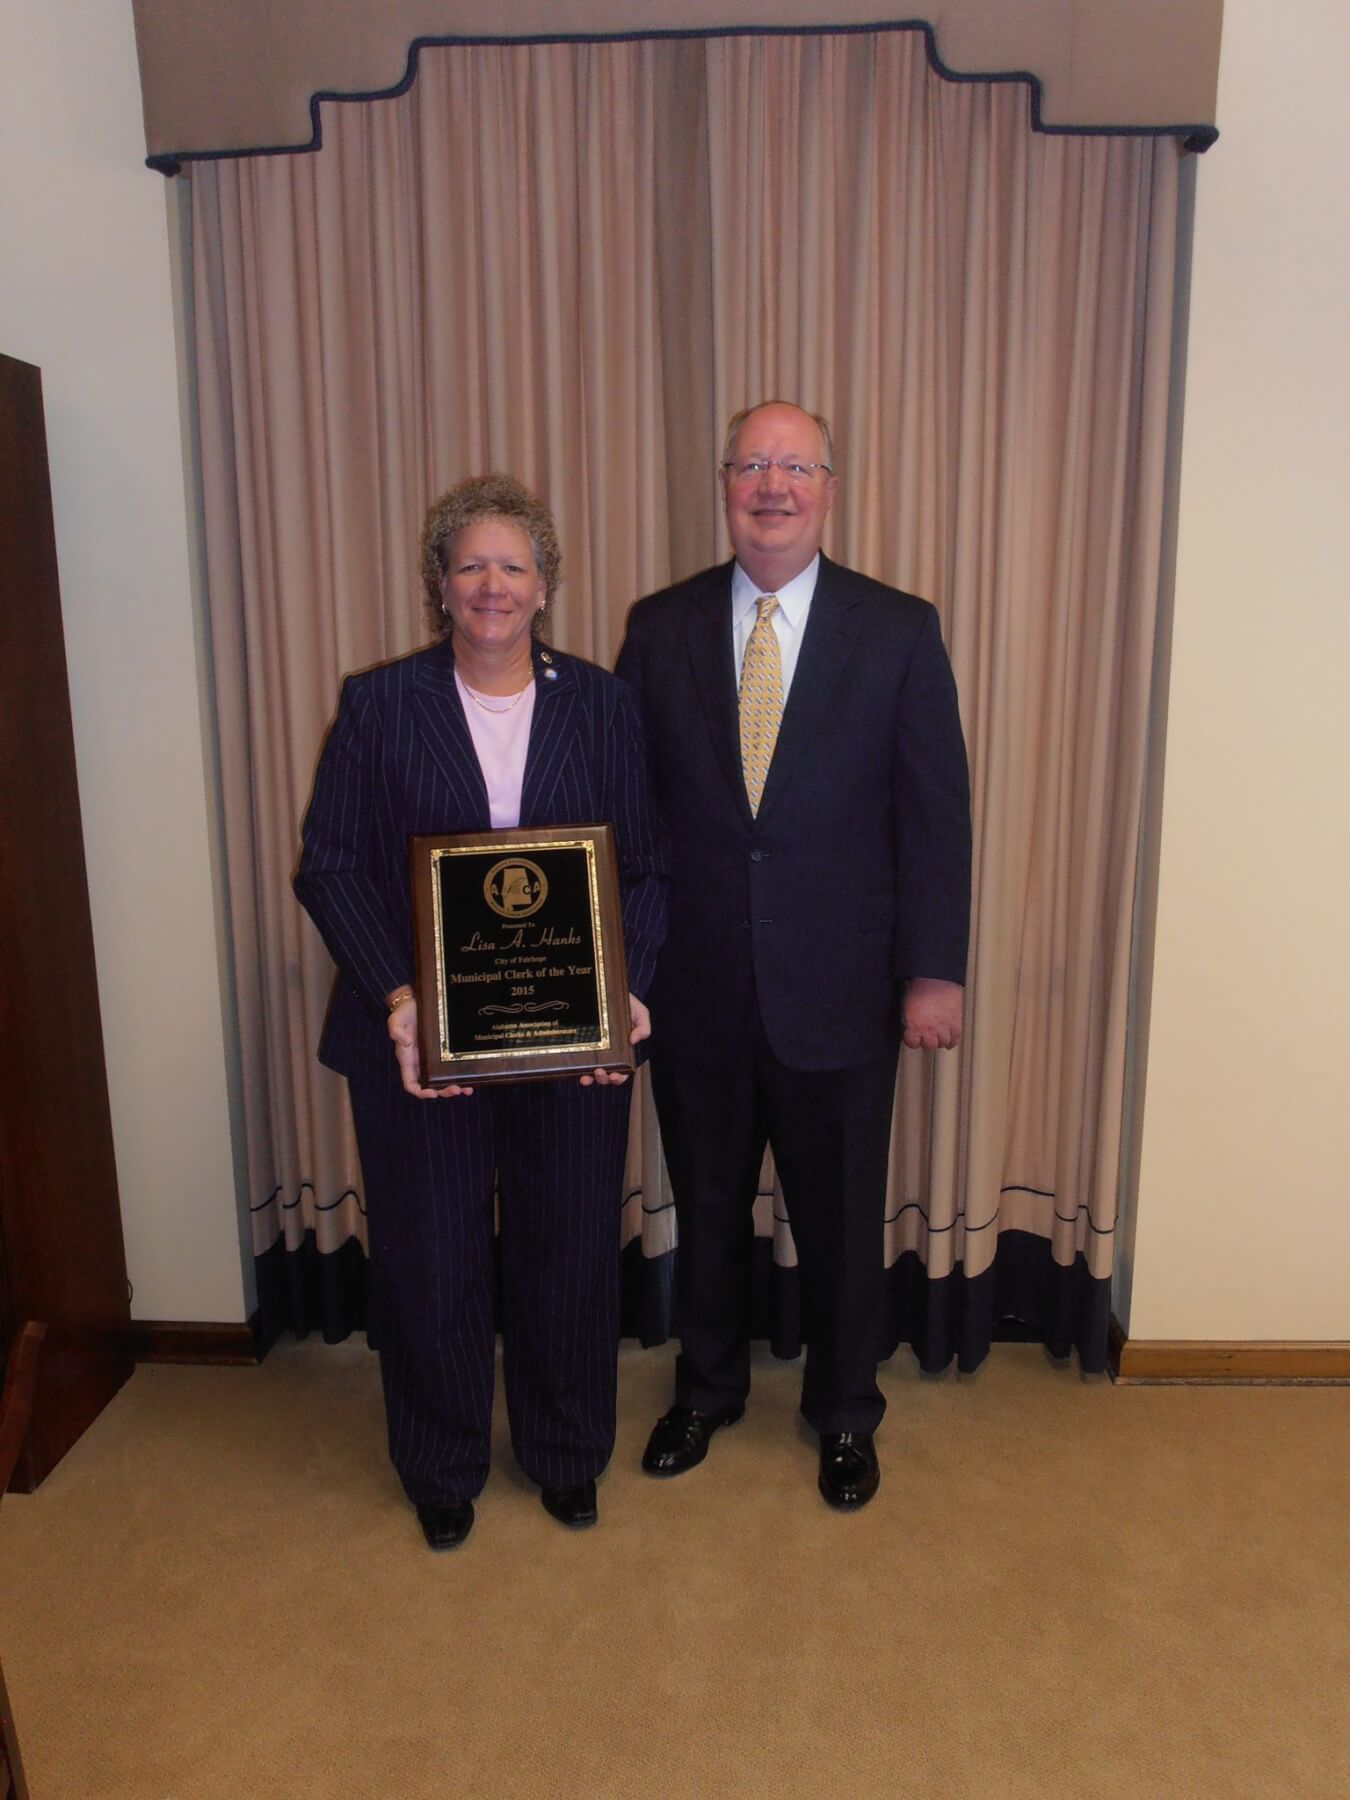 Fairhope's Hanks named Alabama Municipal Clerk of the Year